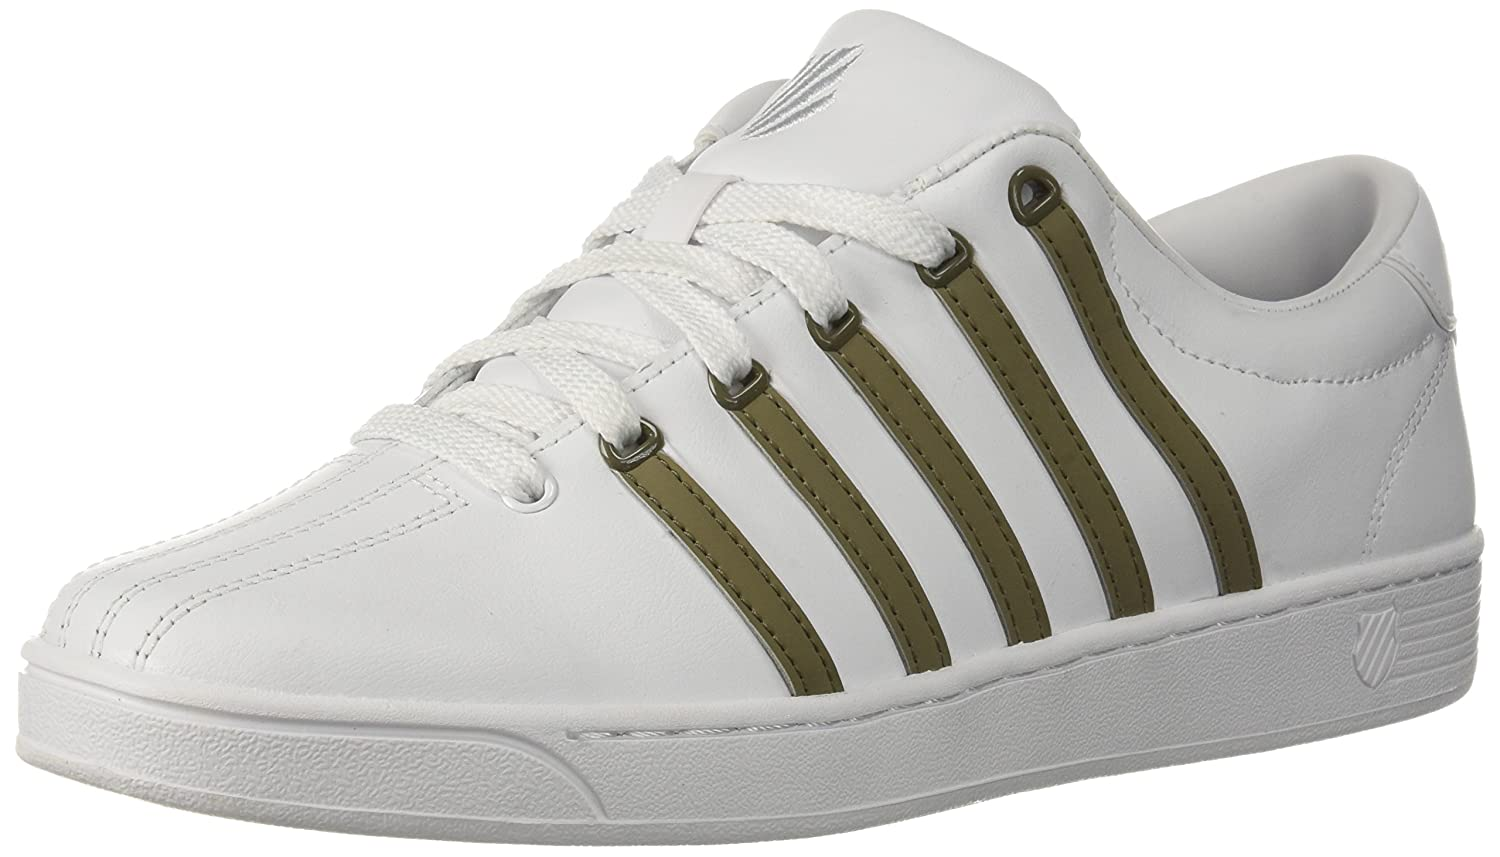 [ケースイス] メンズ メンズ 8 D(M) Green US White/Covert White/Covert Green B073WVDHYN, 大洲市:ba92f1c3 --- cgt-tbc.fr